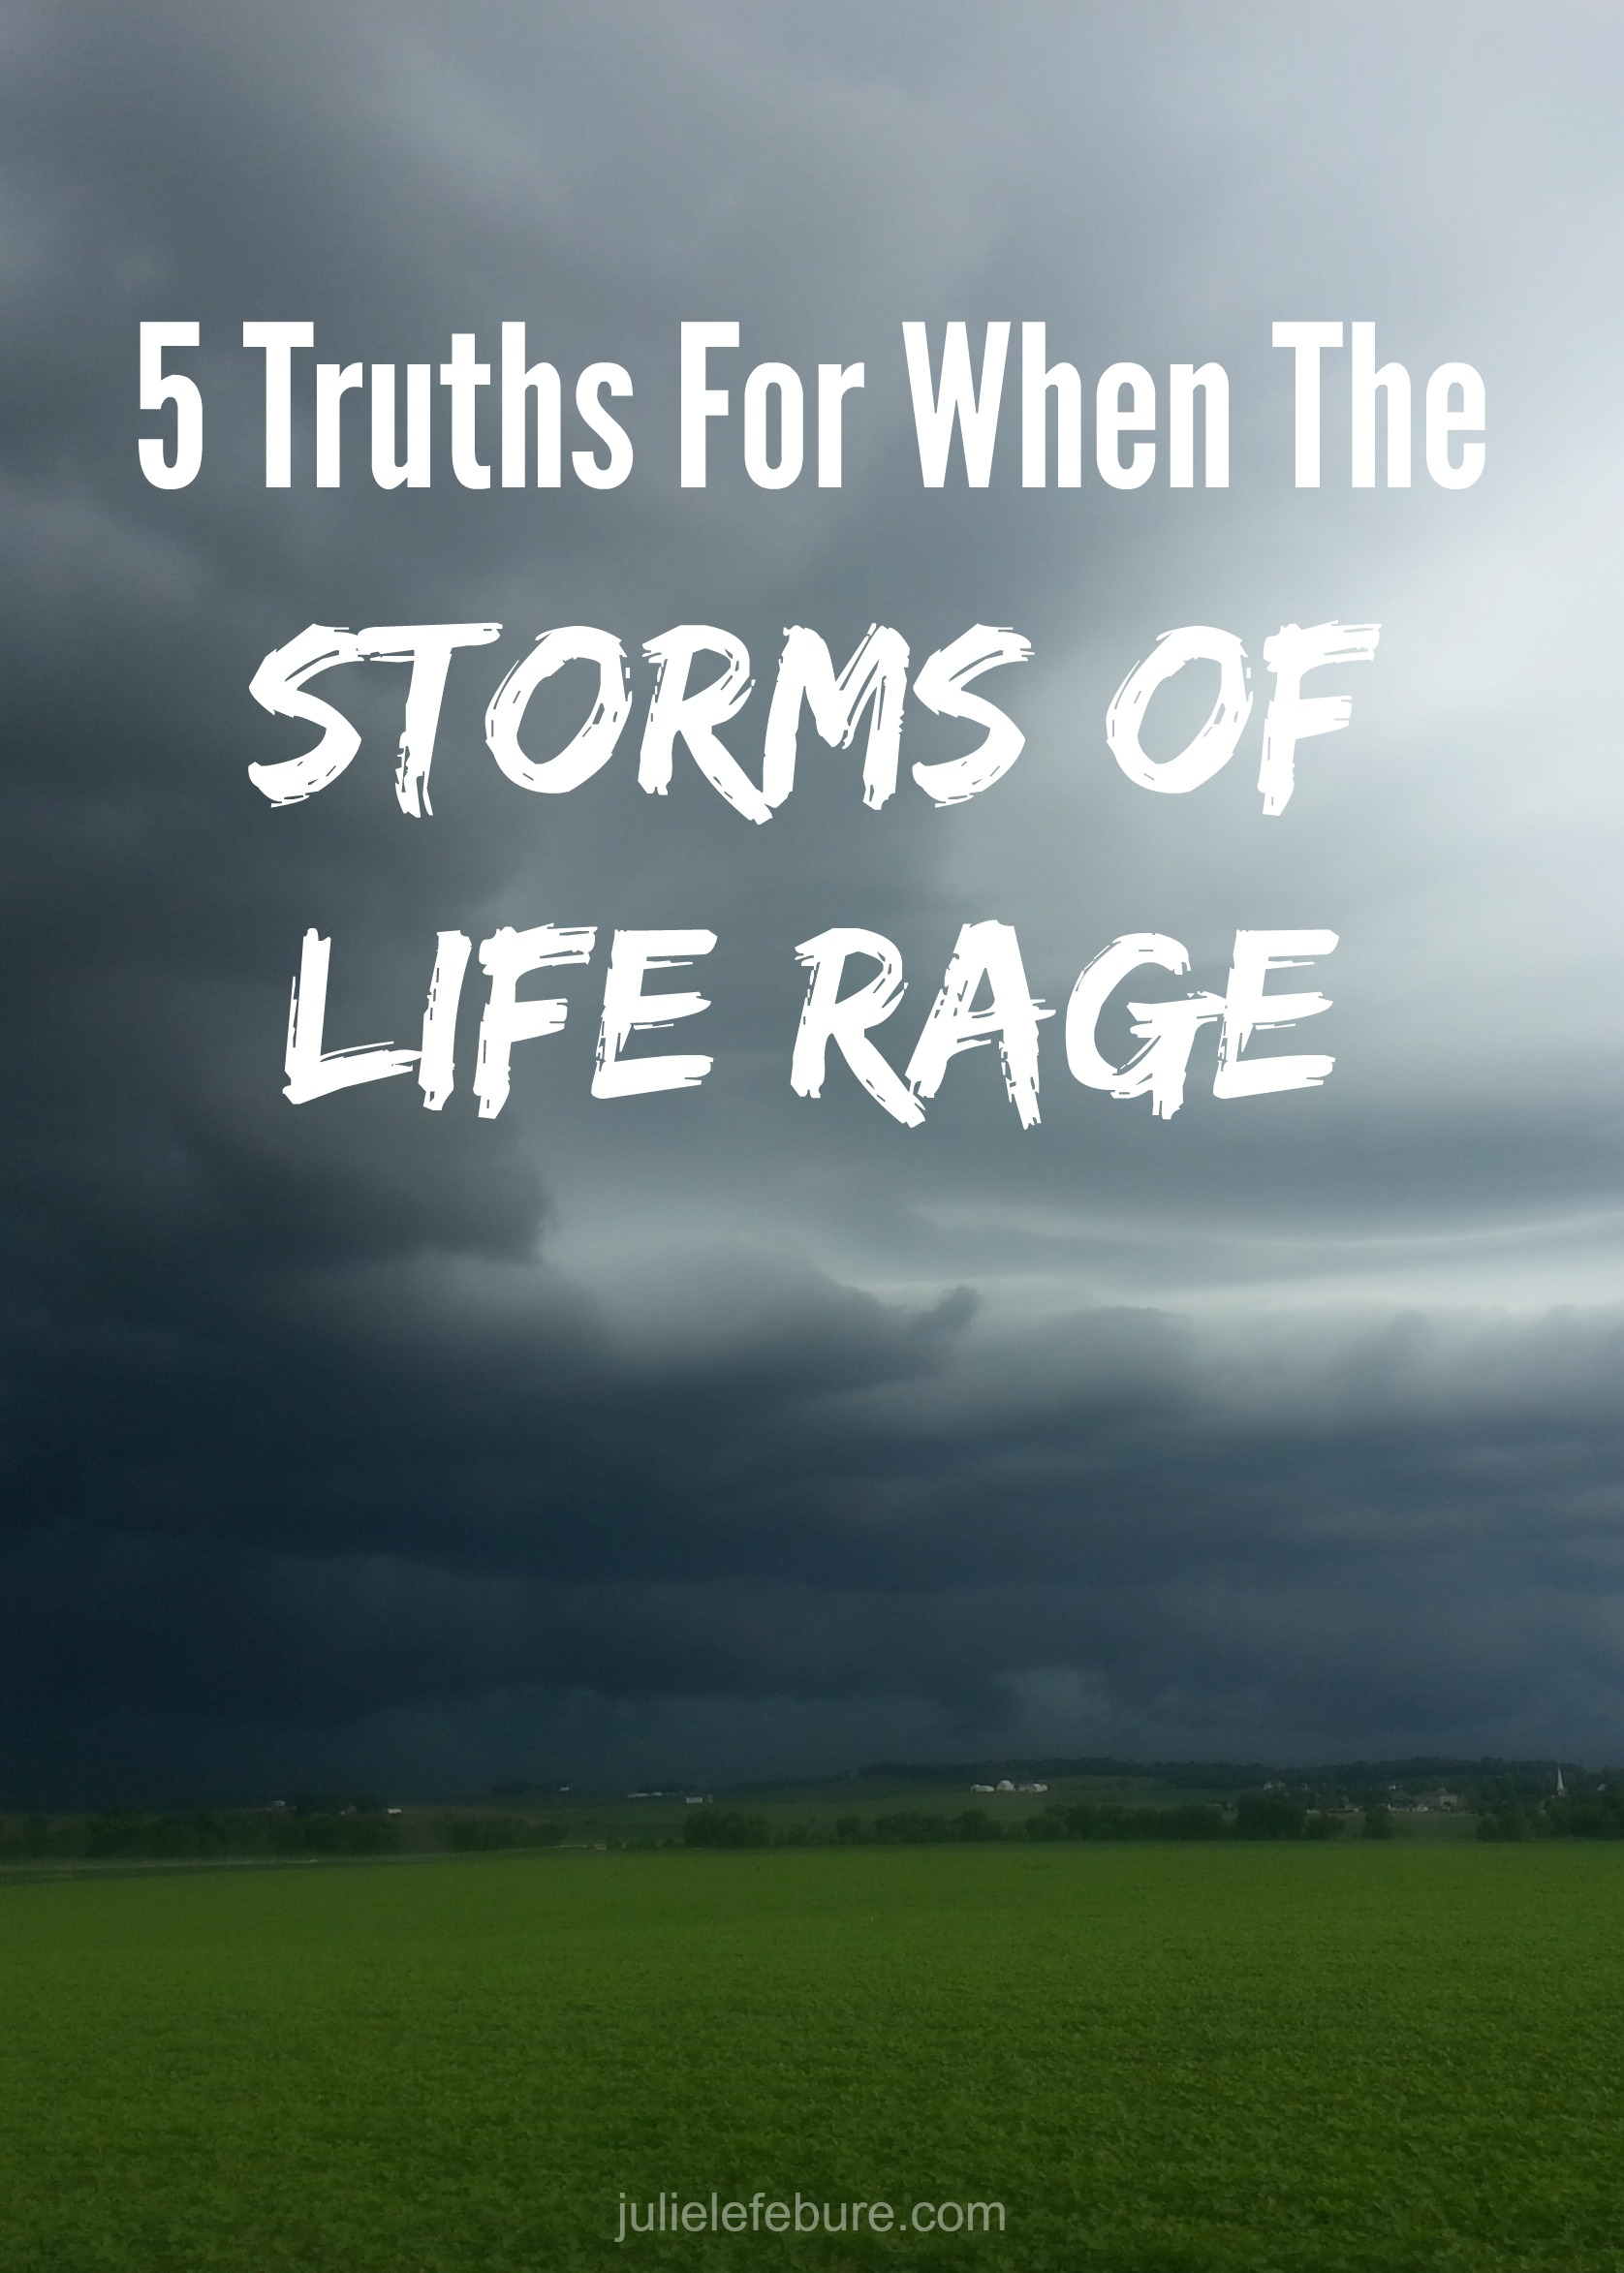 5 Truths For When The Storms Of Life Rage